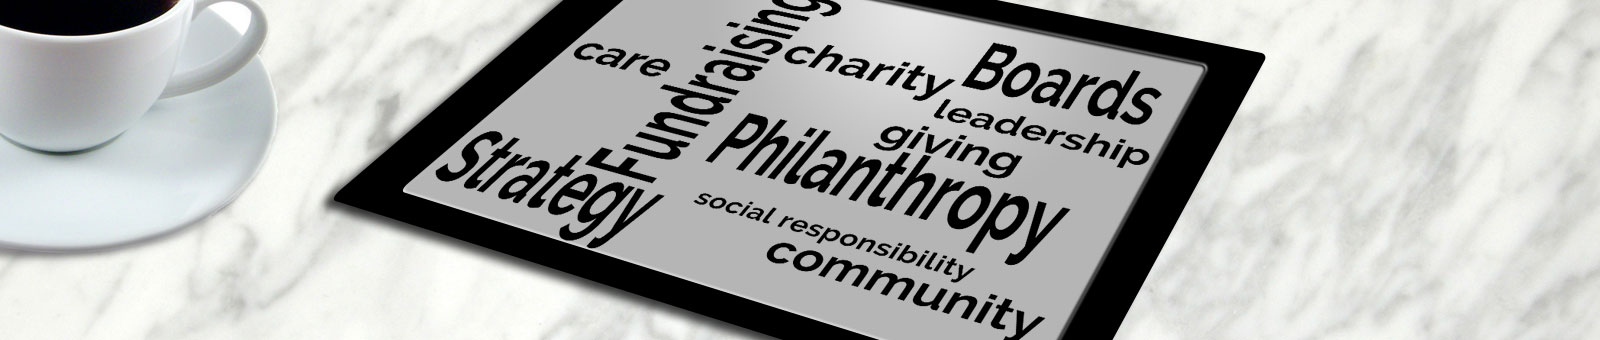 Fundraising, Philanthropy, Boards,Strategy, Charity, Giving, Community, Care, Leadership, Social Responsibility